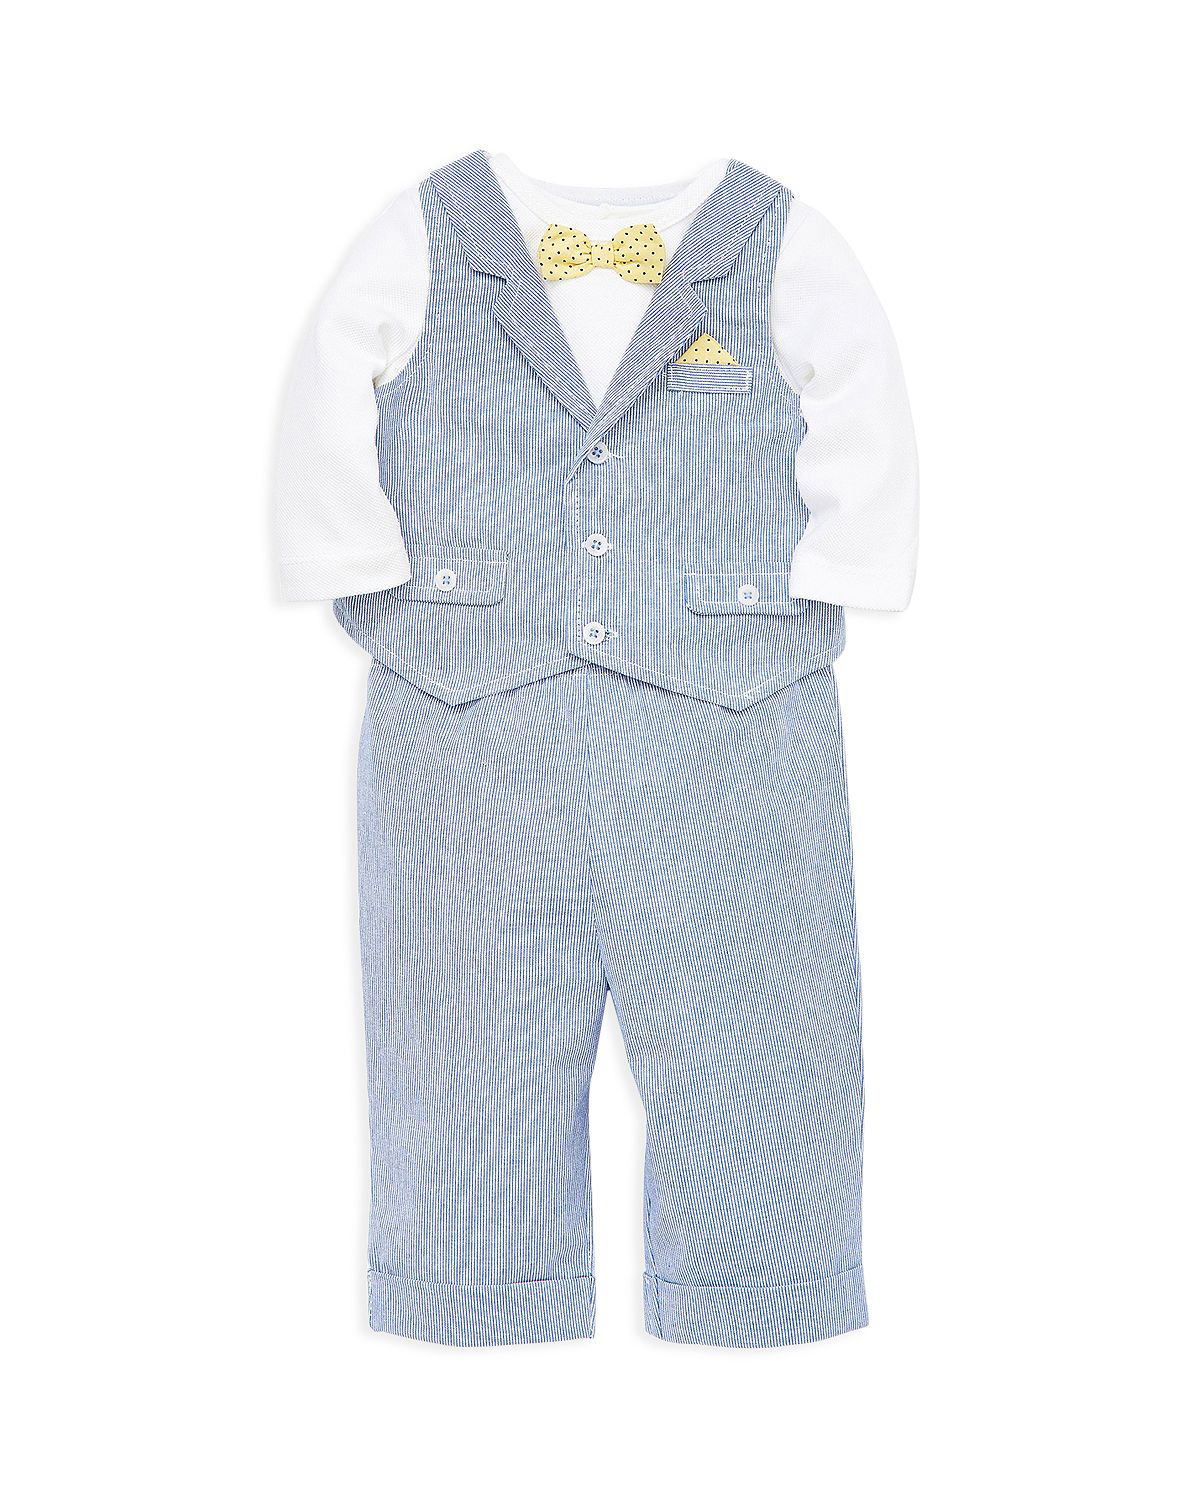 Little Me Three-Piece Bow Tie Bodysuit, Vest, and Pants Set